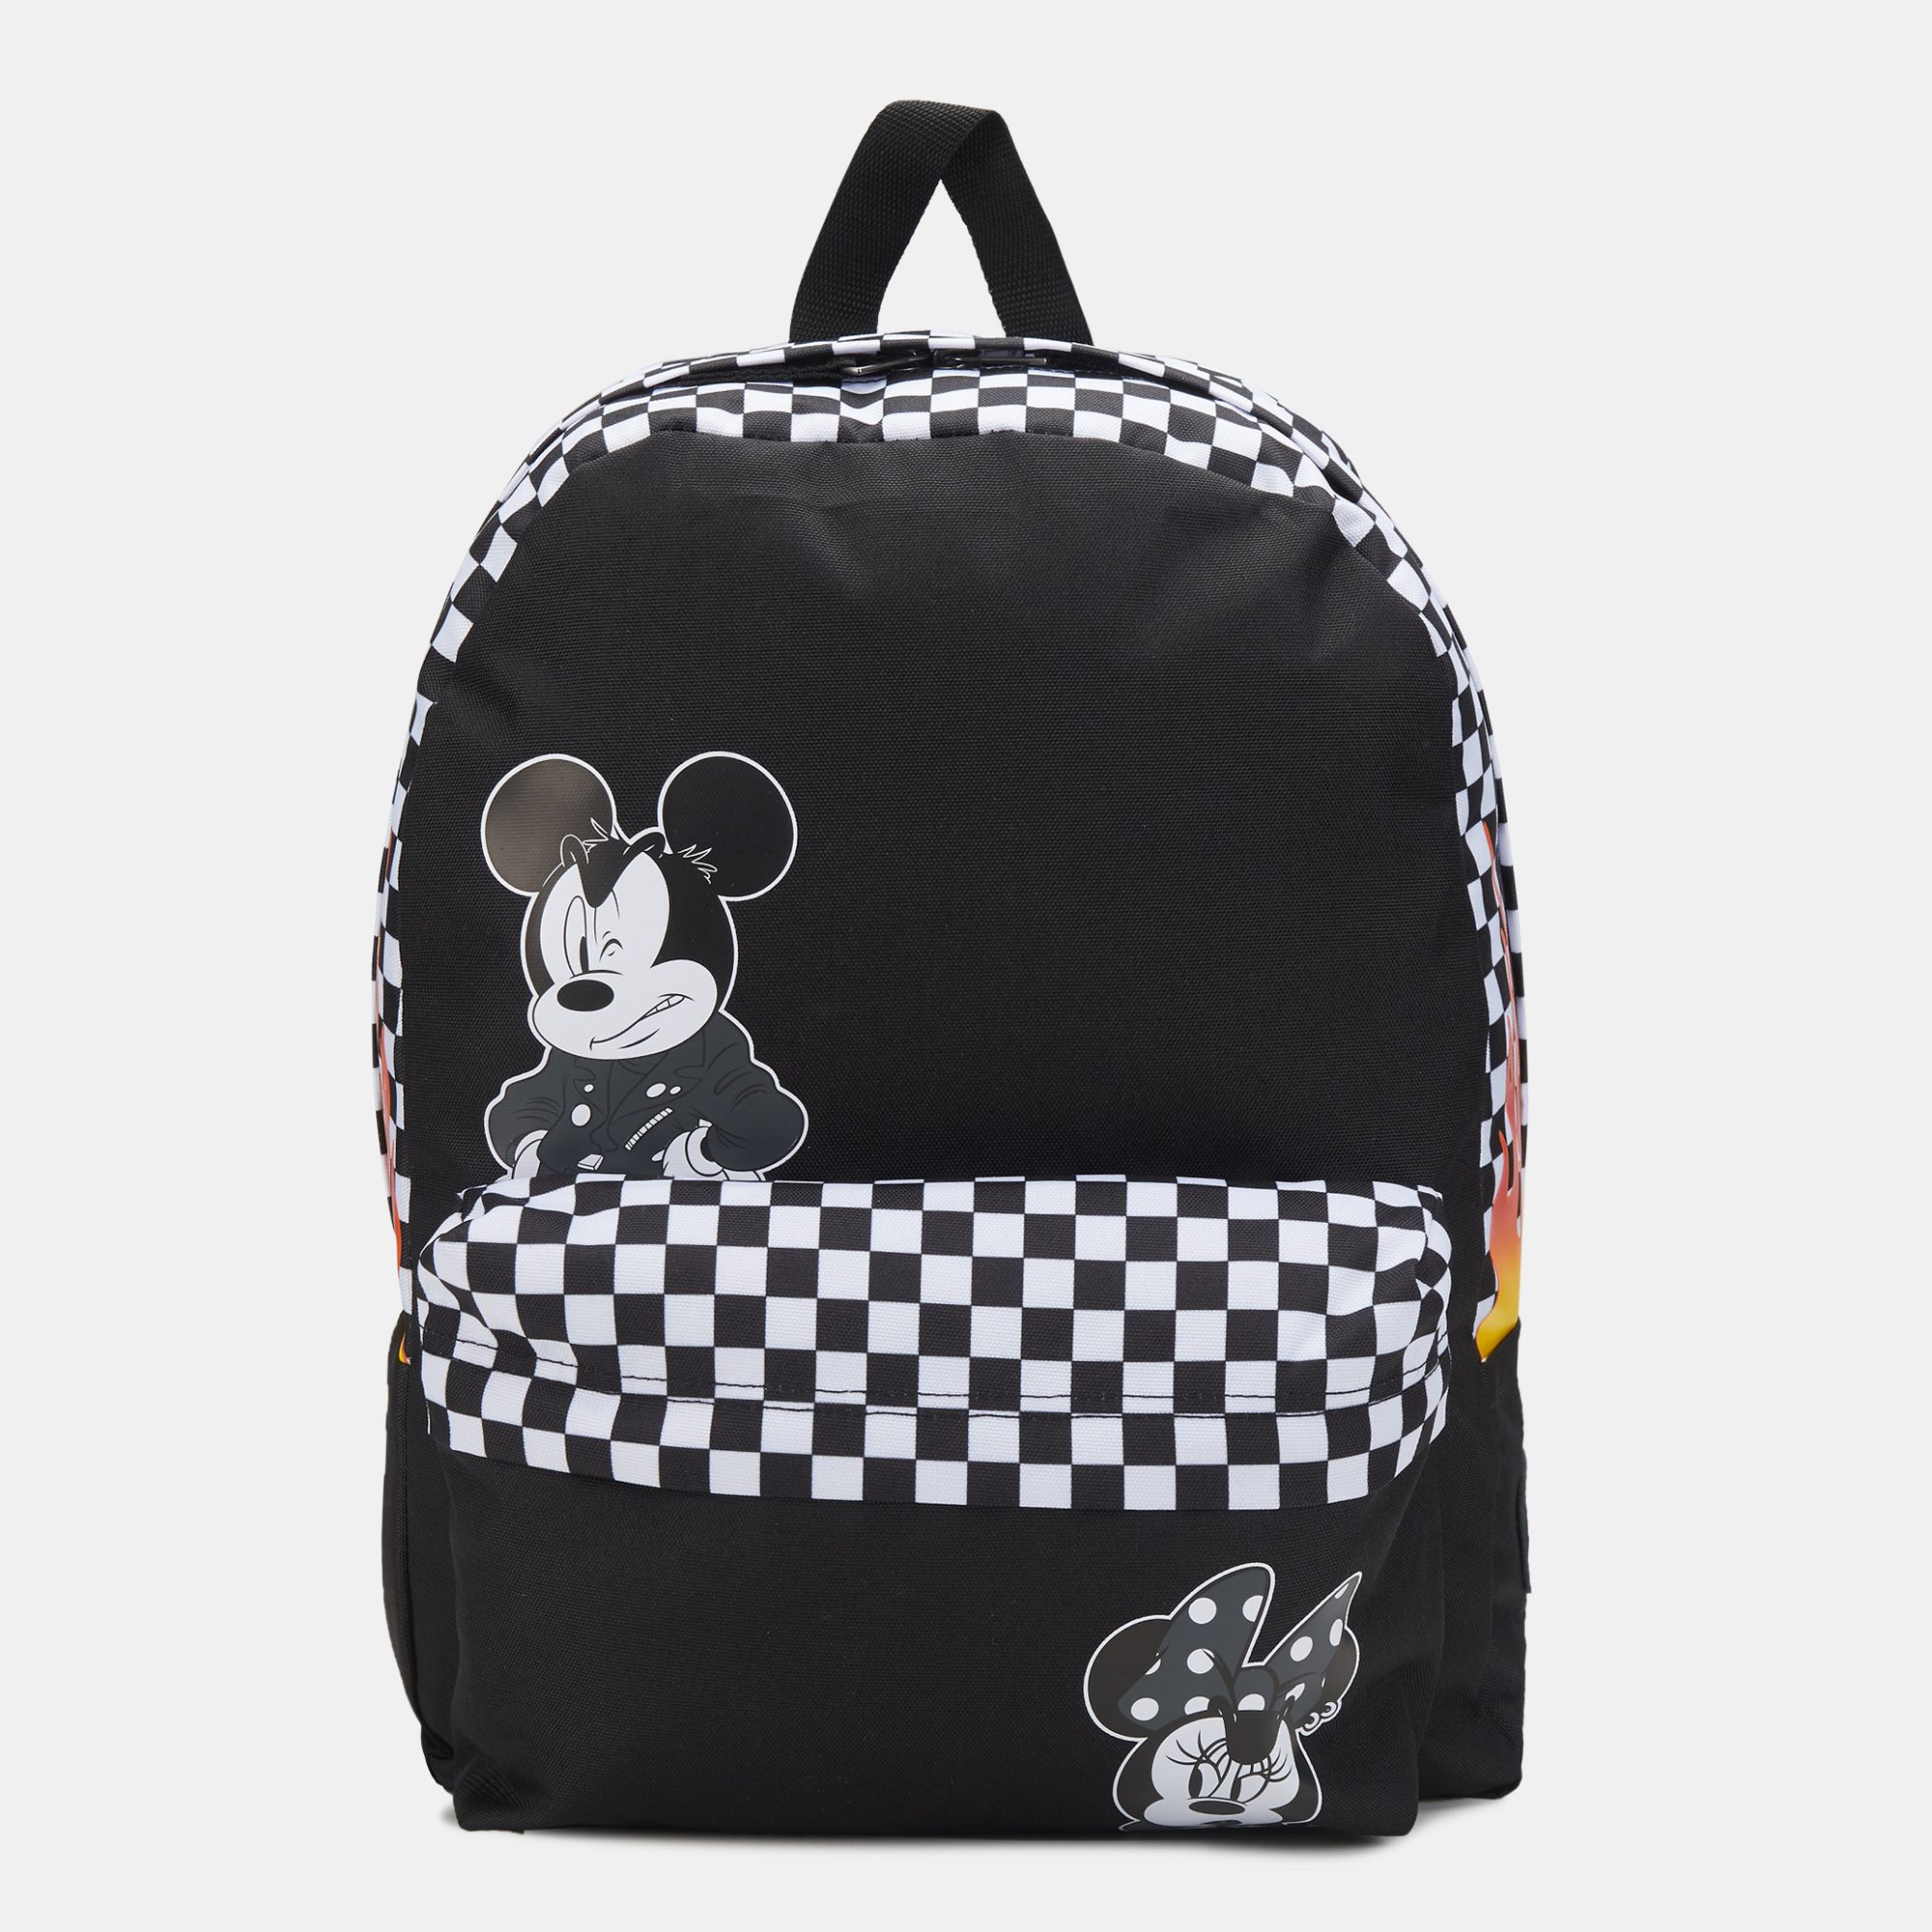 9da590a490 Vans x Disney Mickey Mouse Punk Realm Backpack